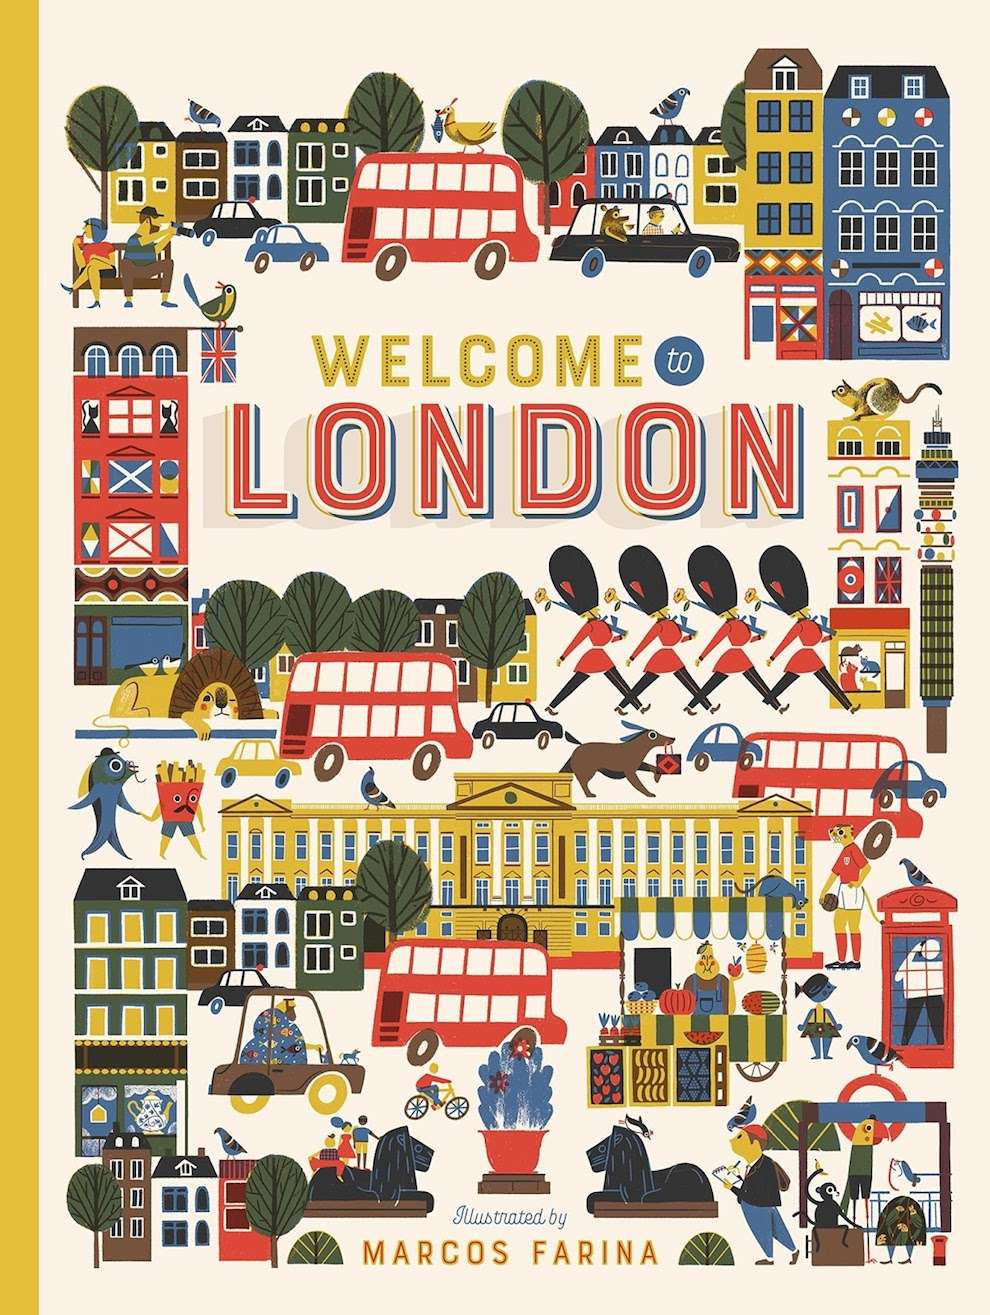 Marcos Farina, Book cover about London. Digital and textural illustrations of London landmark and famous elements. Playful and bright.